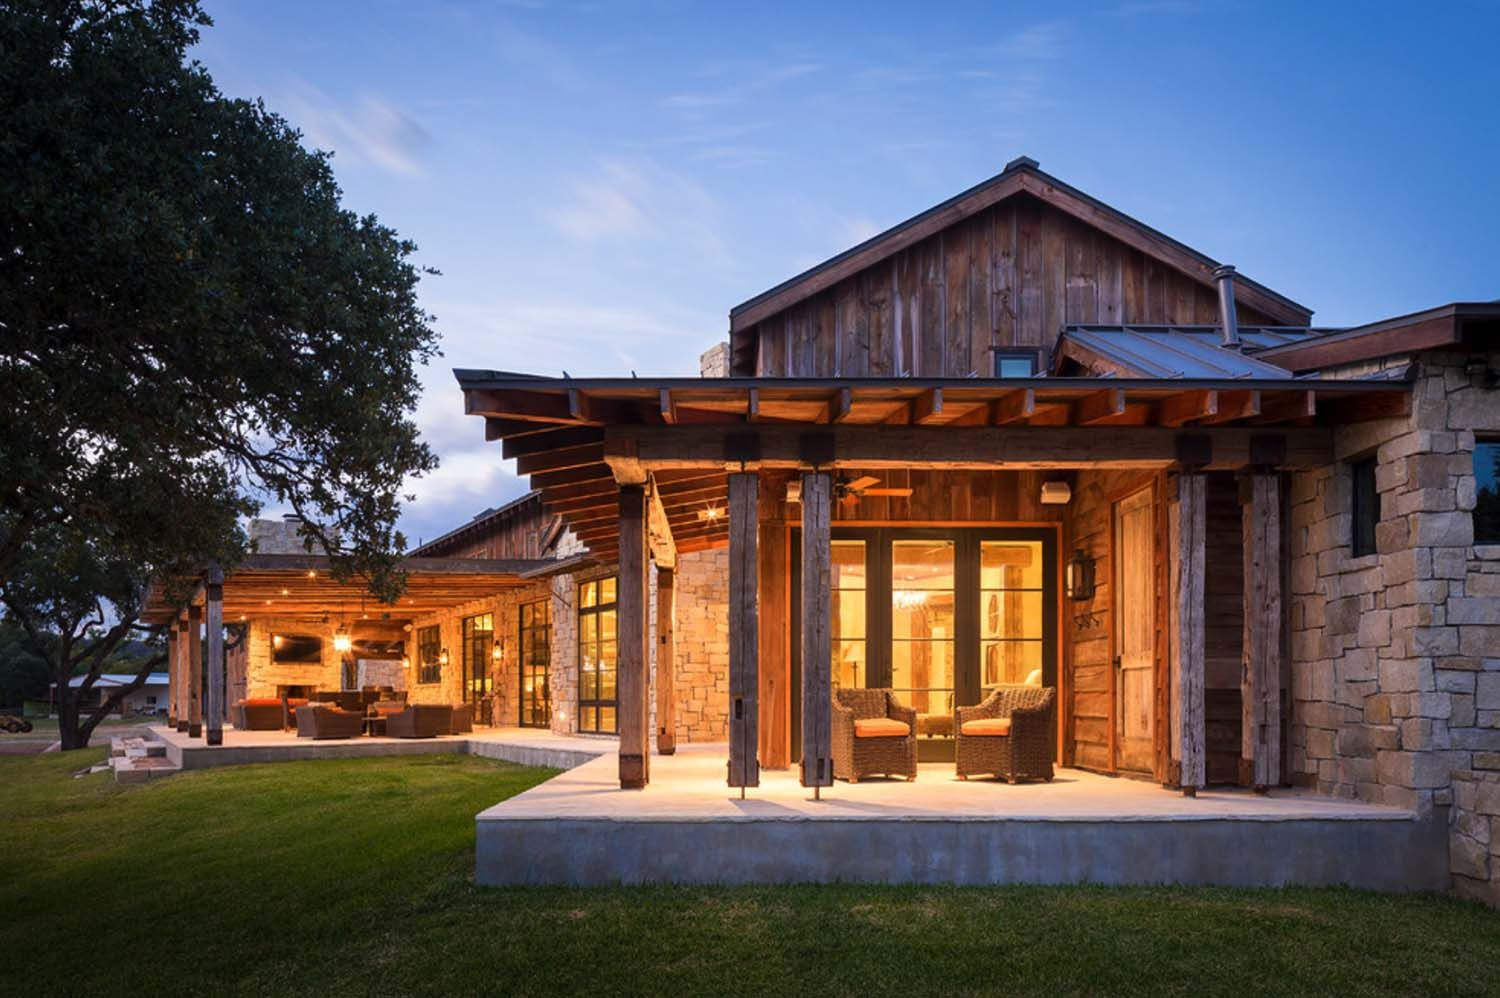 Modern rustic barn style retreat in texas hill country for Modern rustic house designs